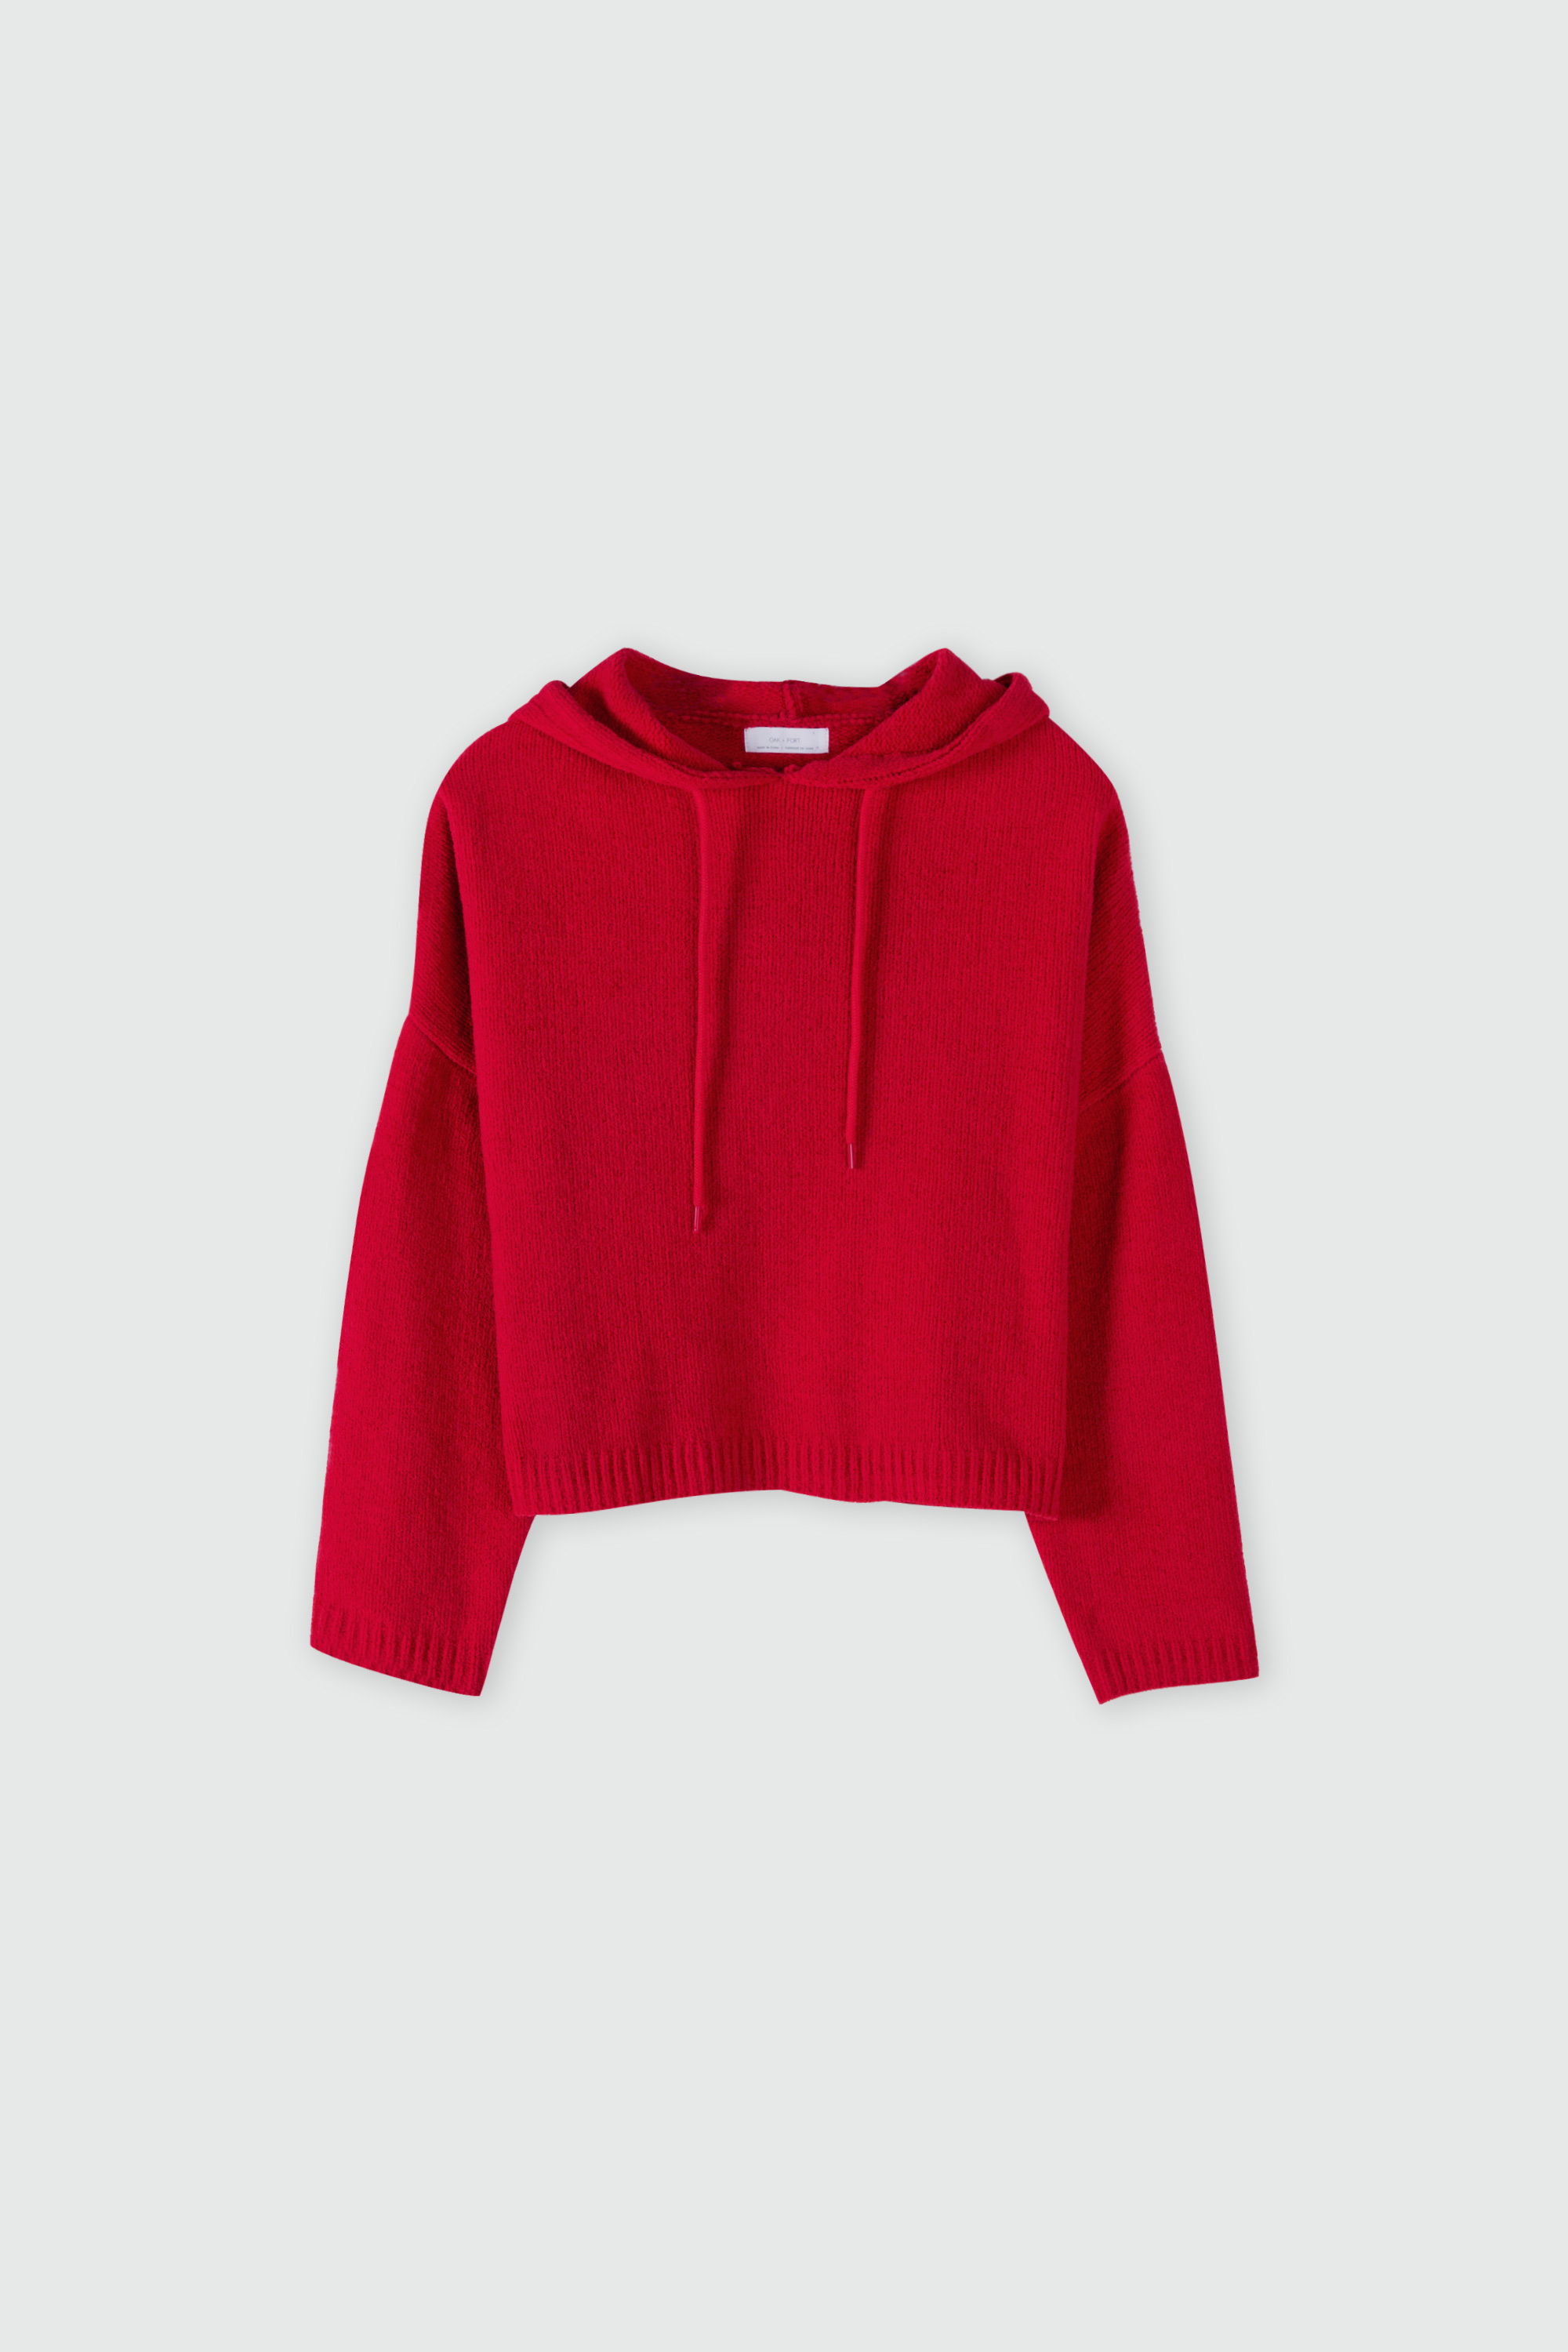 Sweater 2926 Red 7